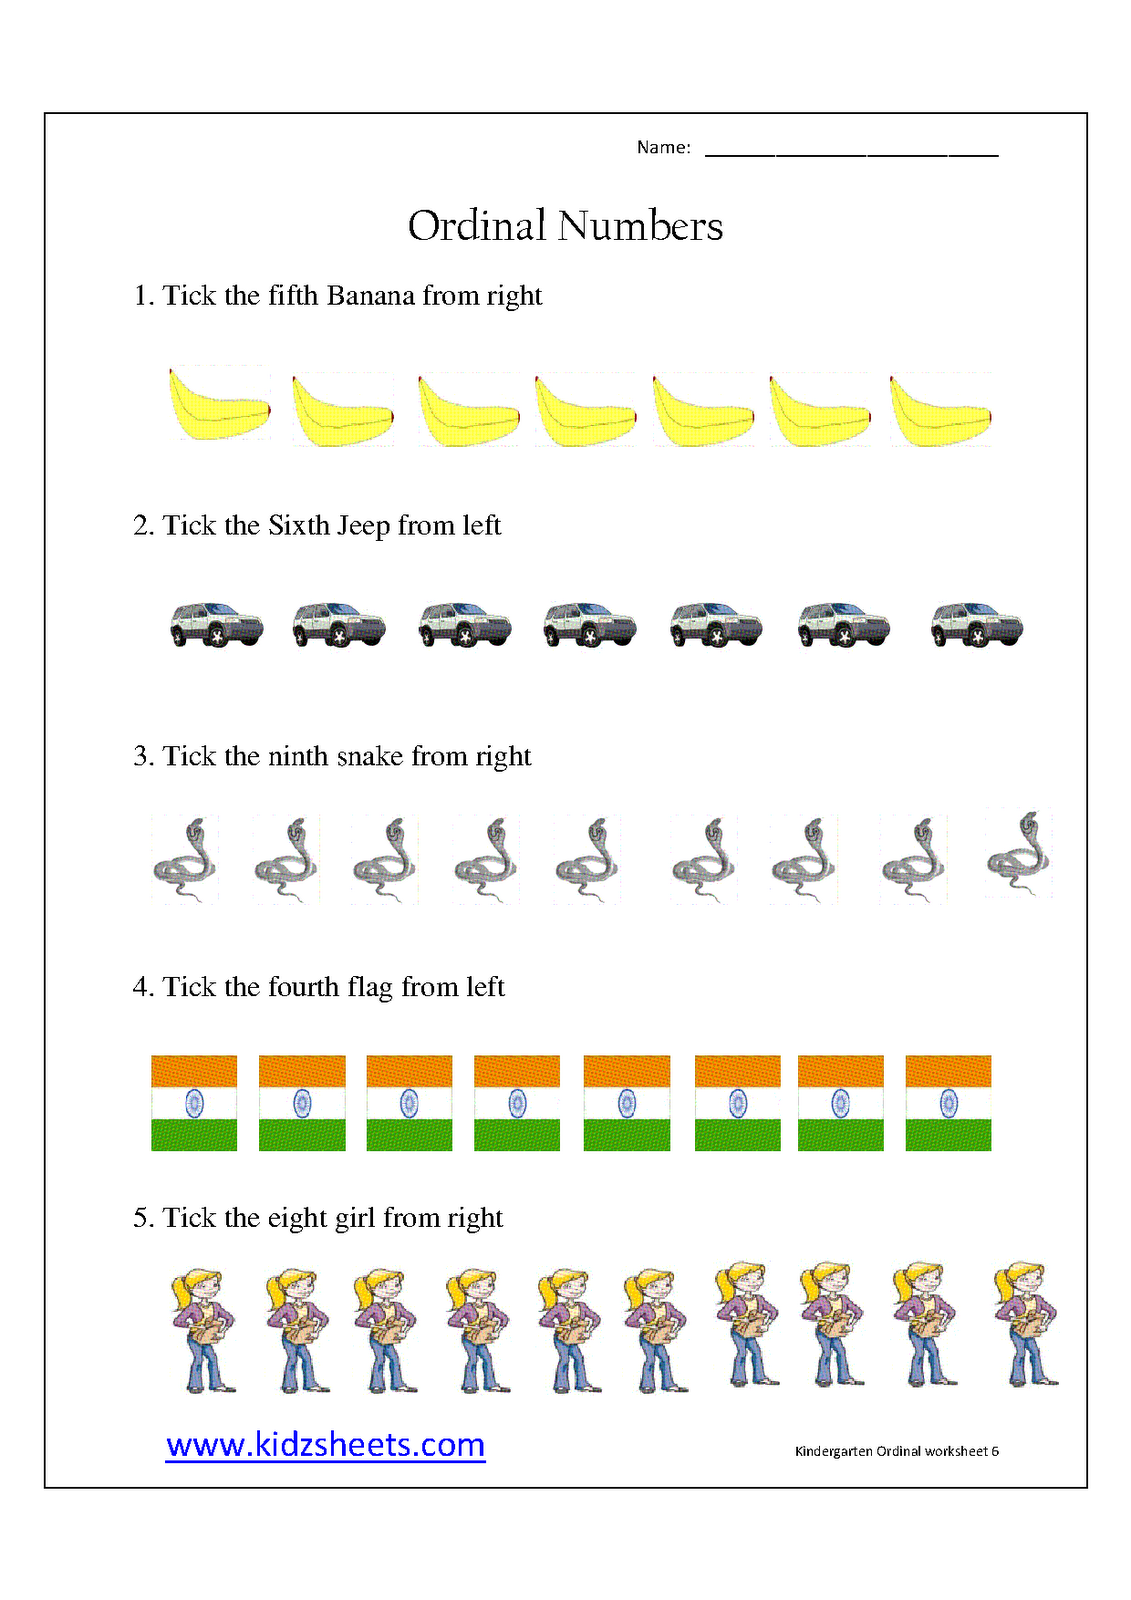 Kidz Worksheets: Kindergarten Ordinal Numbers Worksheet6